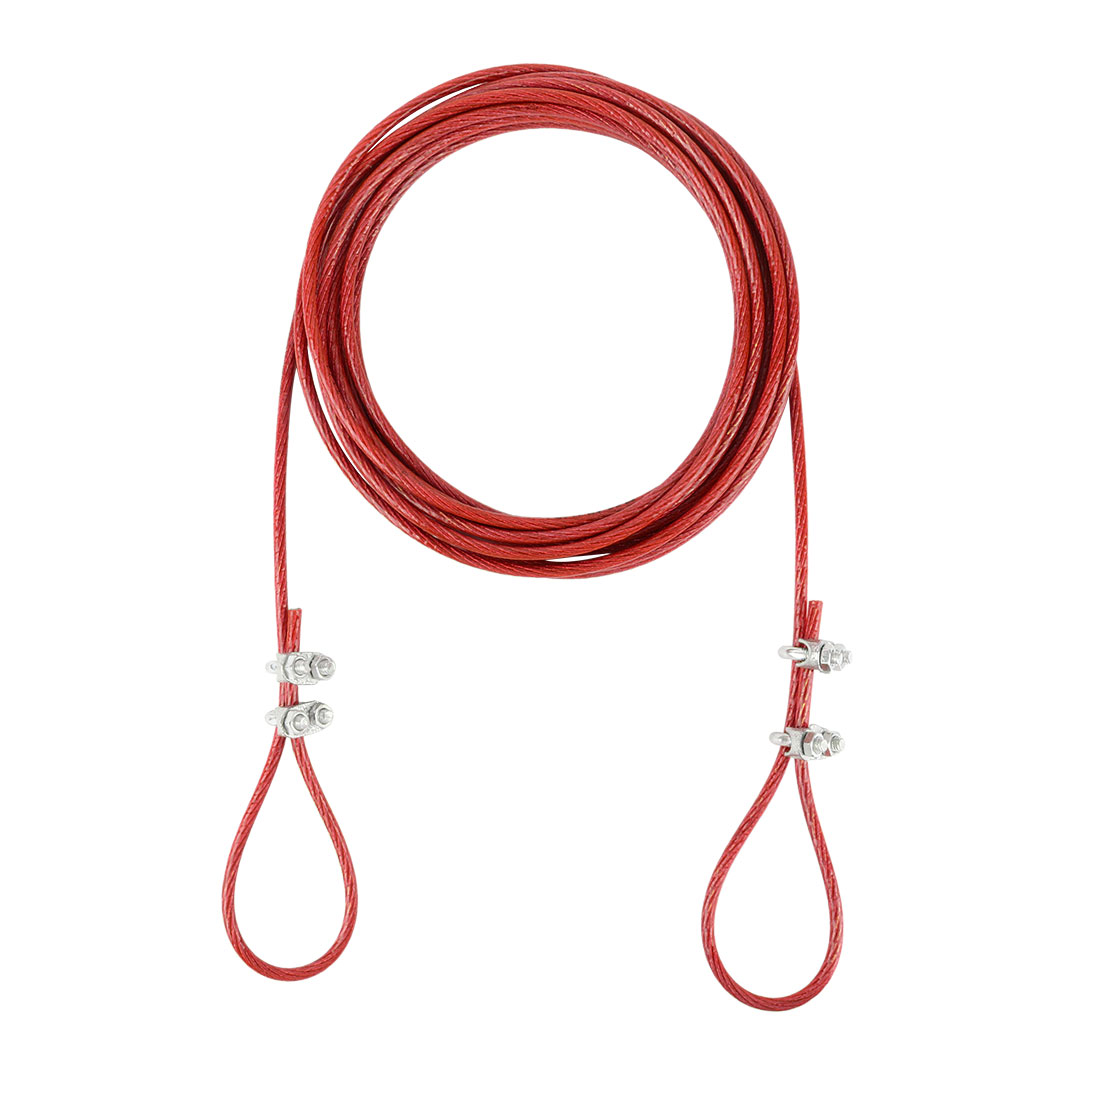 Steel Cored Clothesline Endure Heavy Weight Nylon Wrapped Red 3 Meters Length